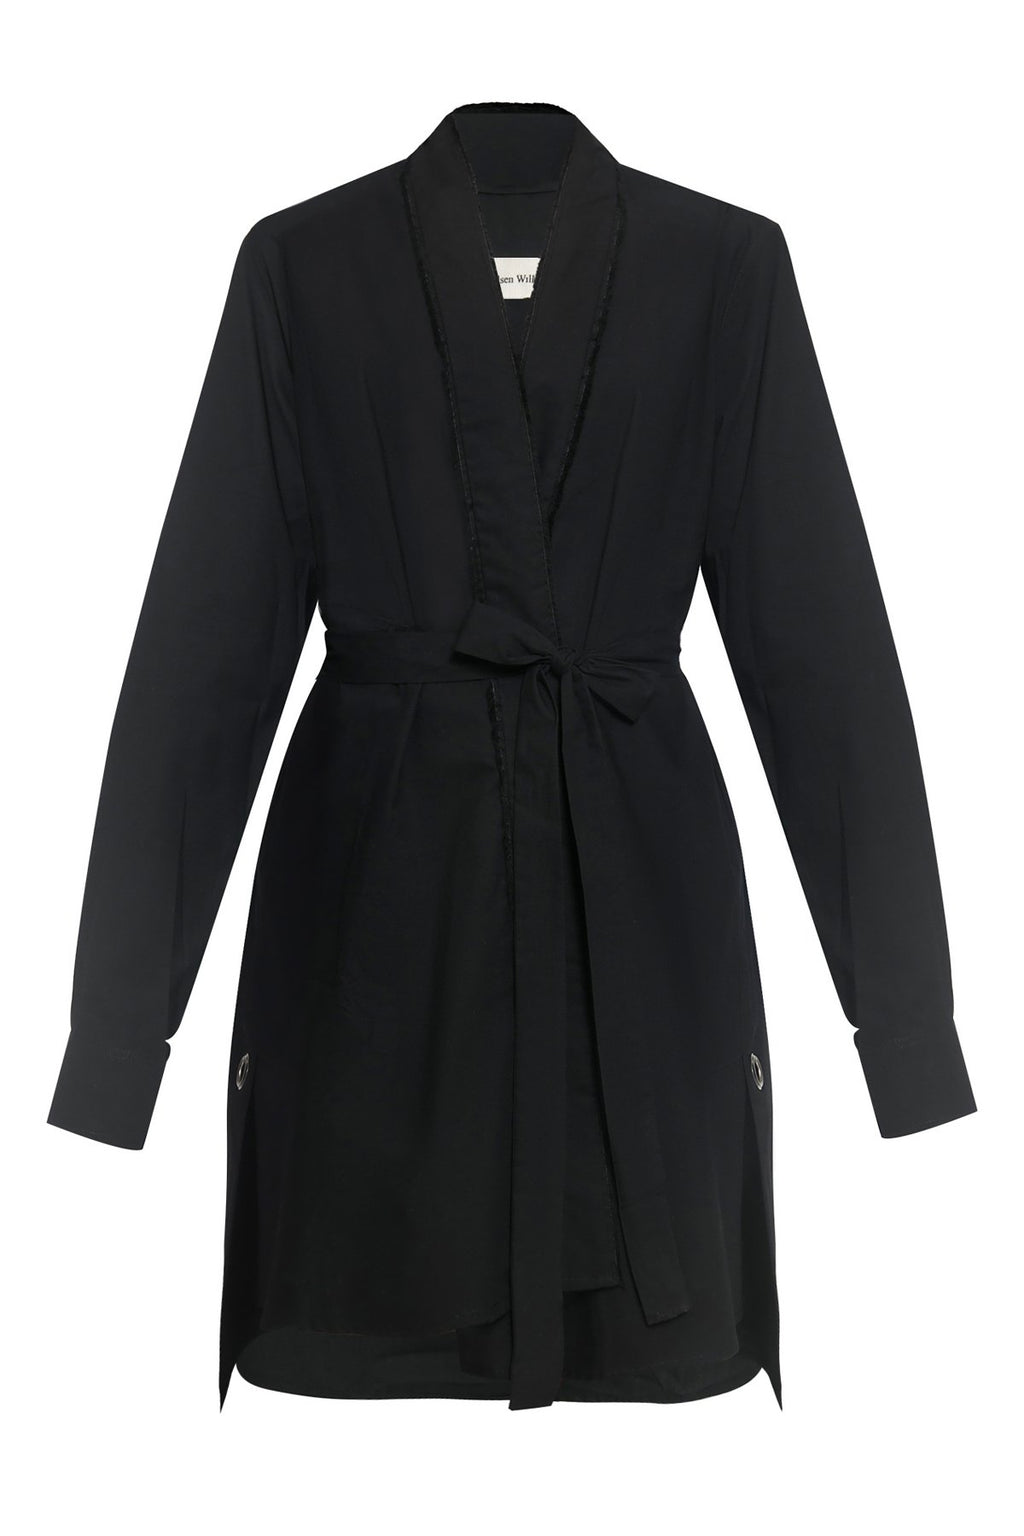 Frayed Edges Kimono Cotton Shirtdress in Black